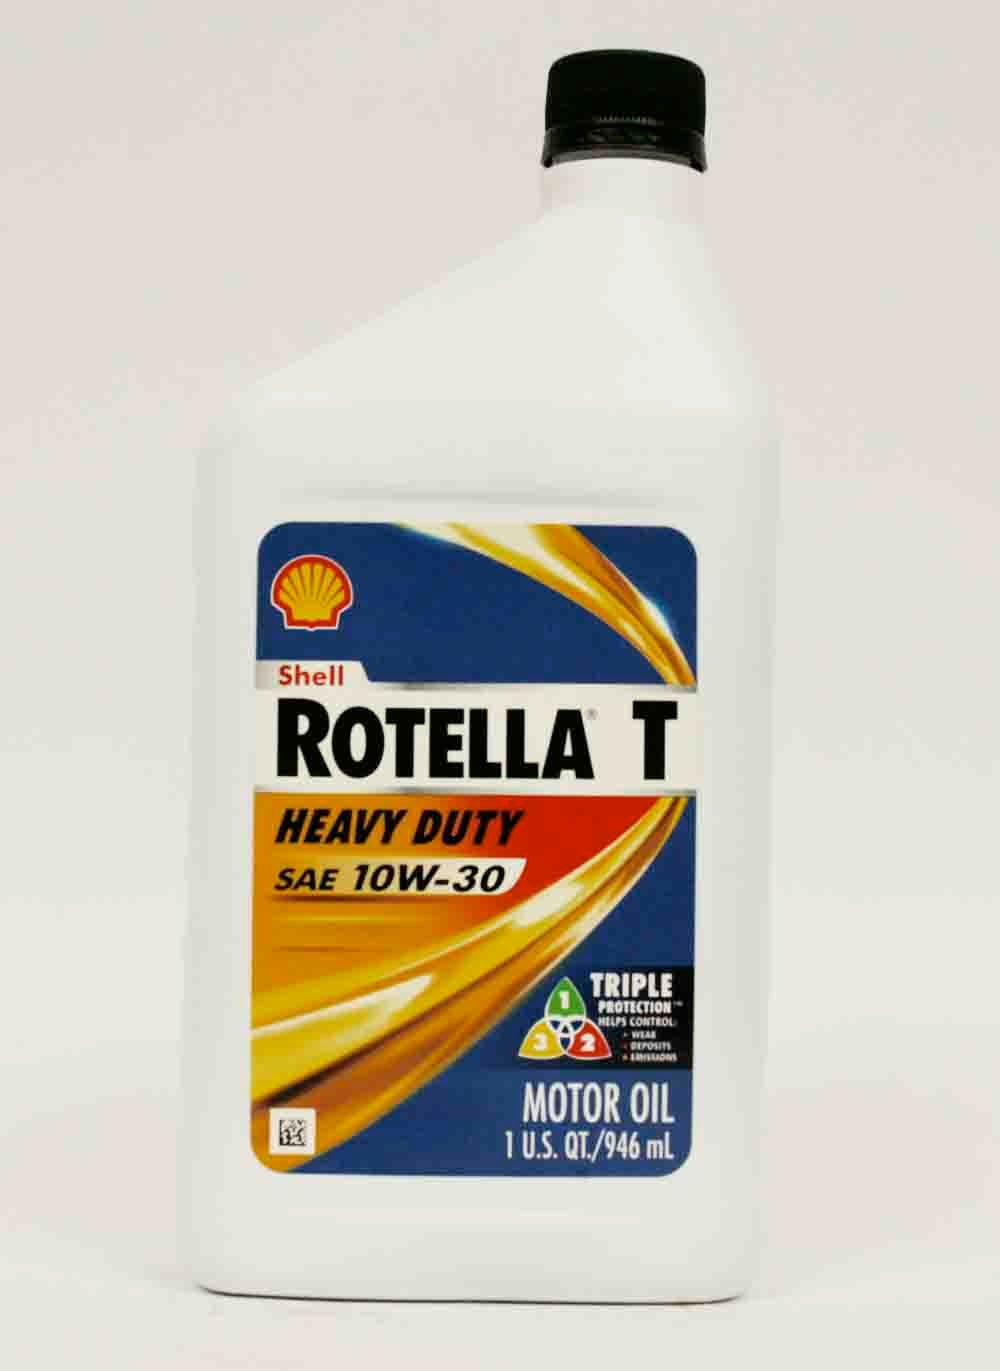 Search Results For Motor Oils Rural King